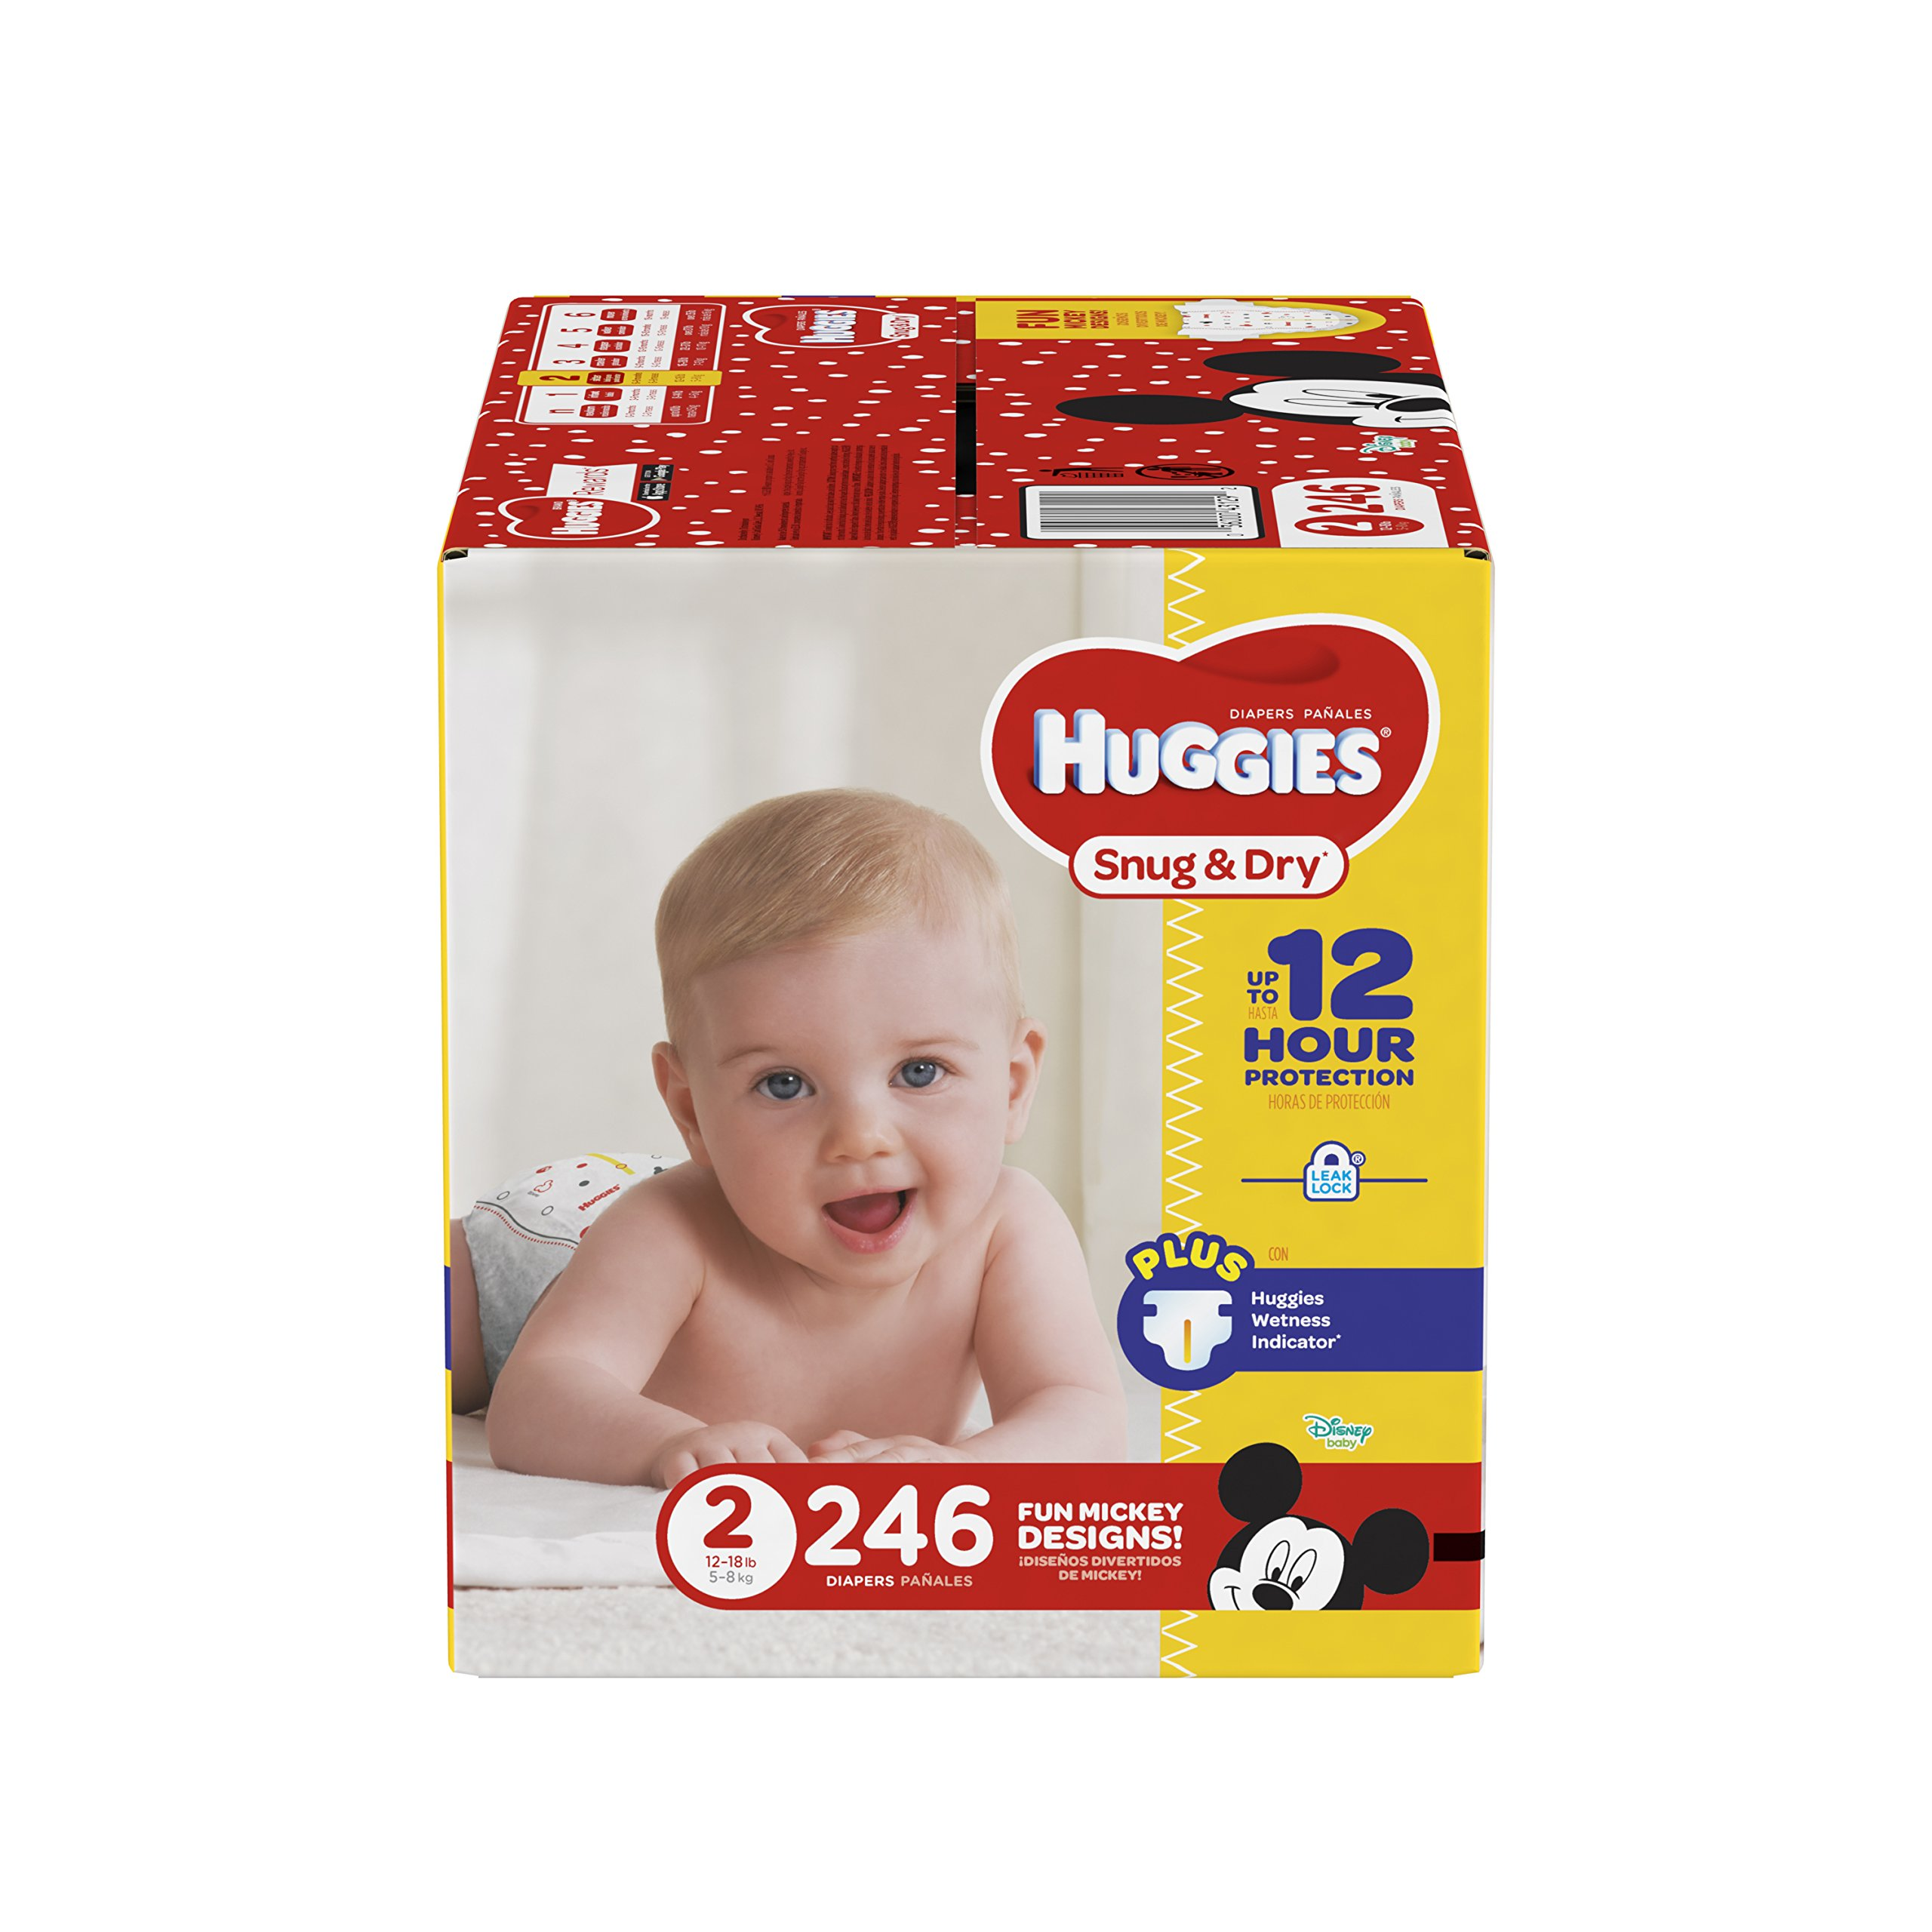 HUGGIES Snug & Dry Diapers, Size 2, 246 Count, ECONOMY PLUS (Packaging